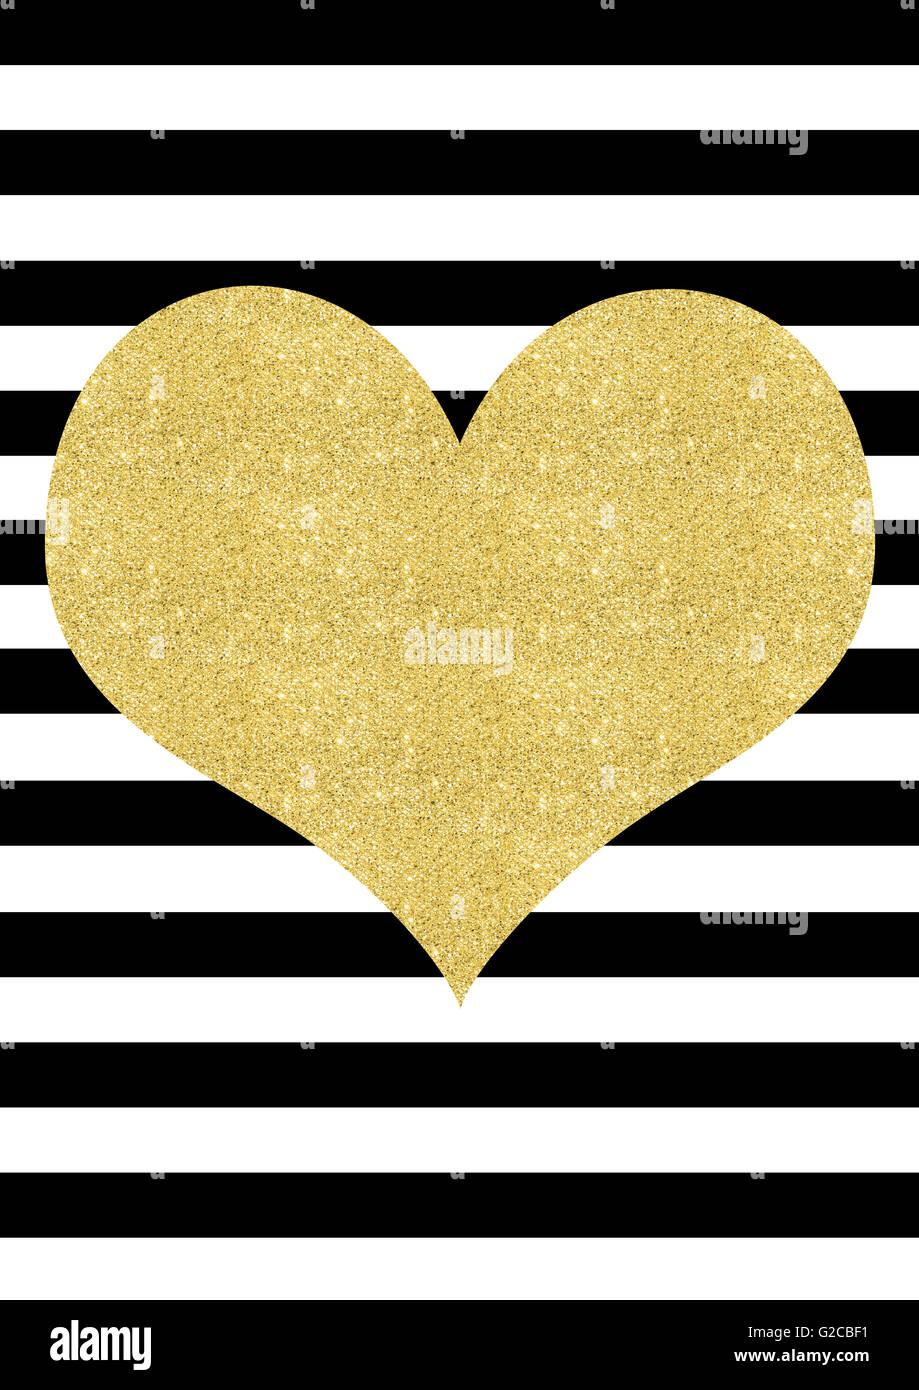 Gold Glitter Effect Heart On A Black And White Striped